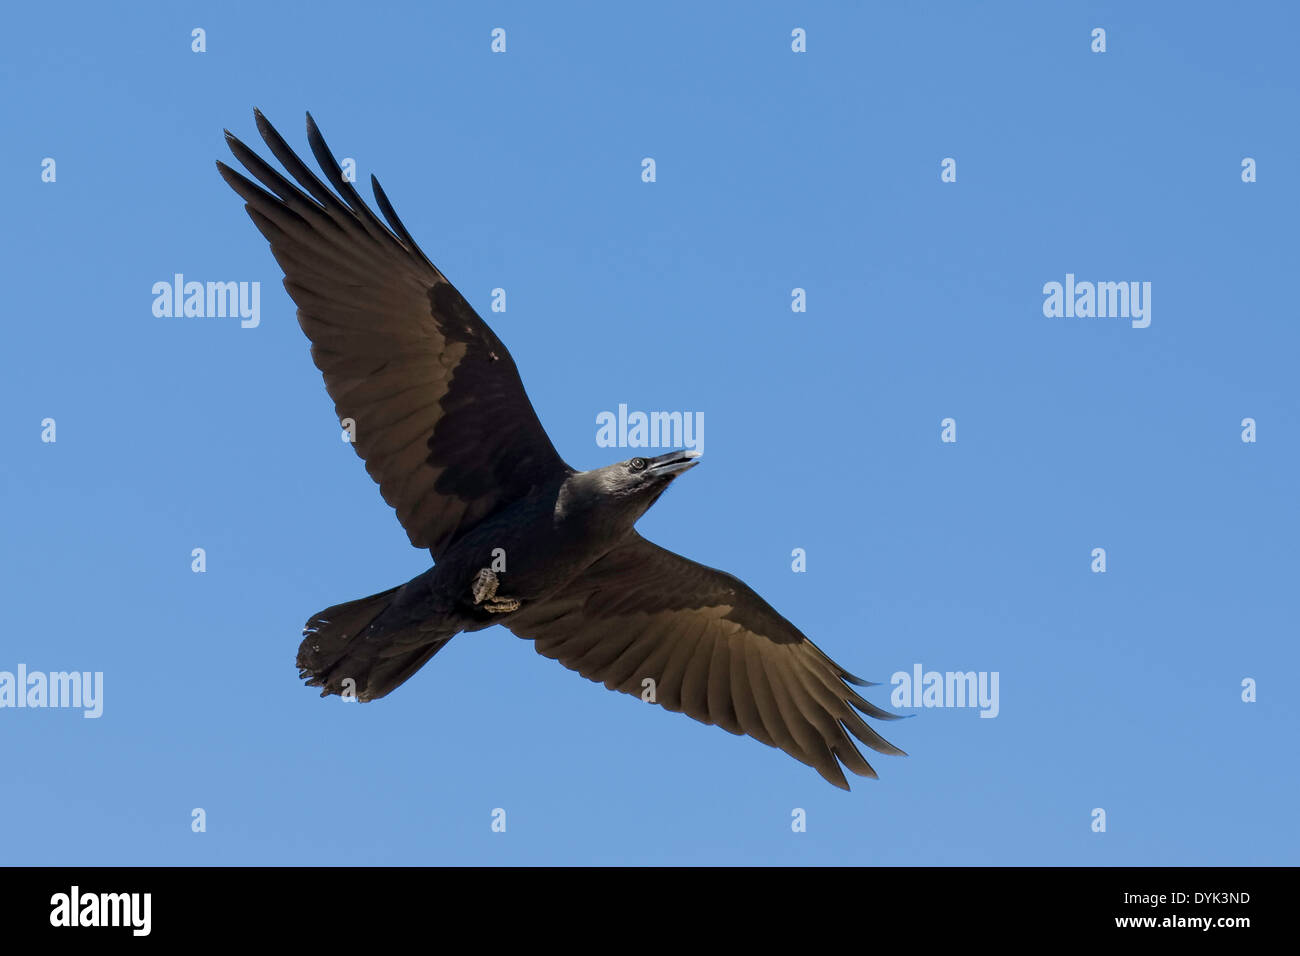 Chihuahuan Raven (Corvus cryptoleucus) - Stock Image